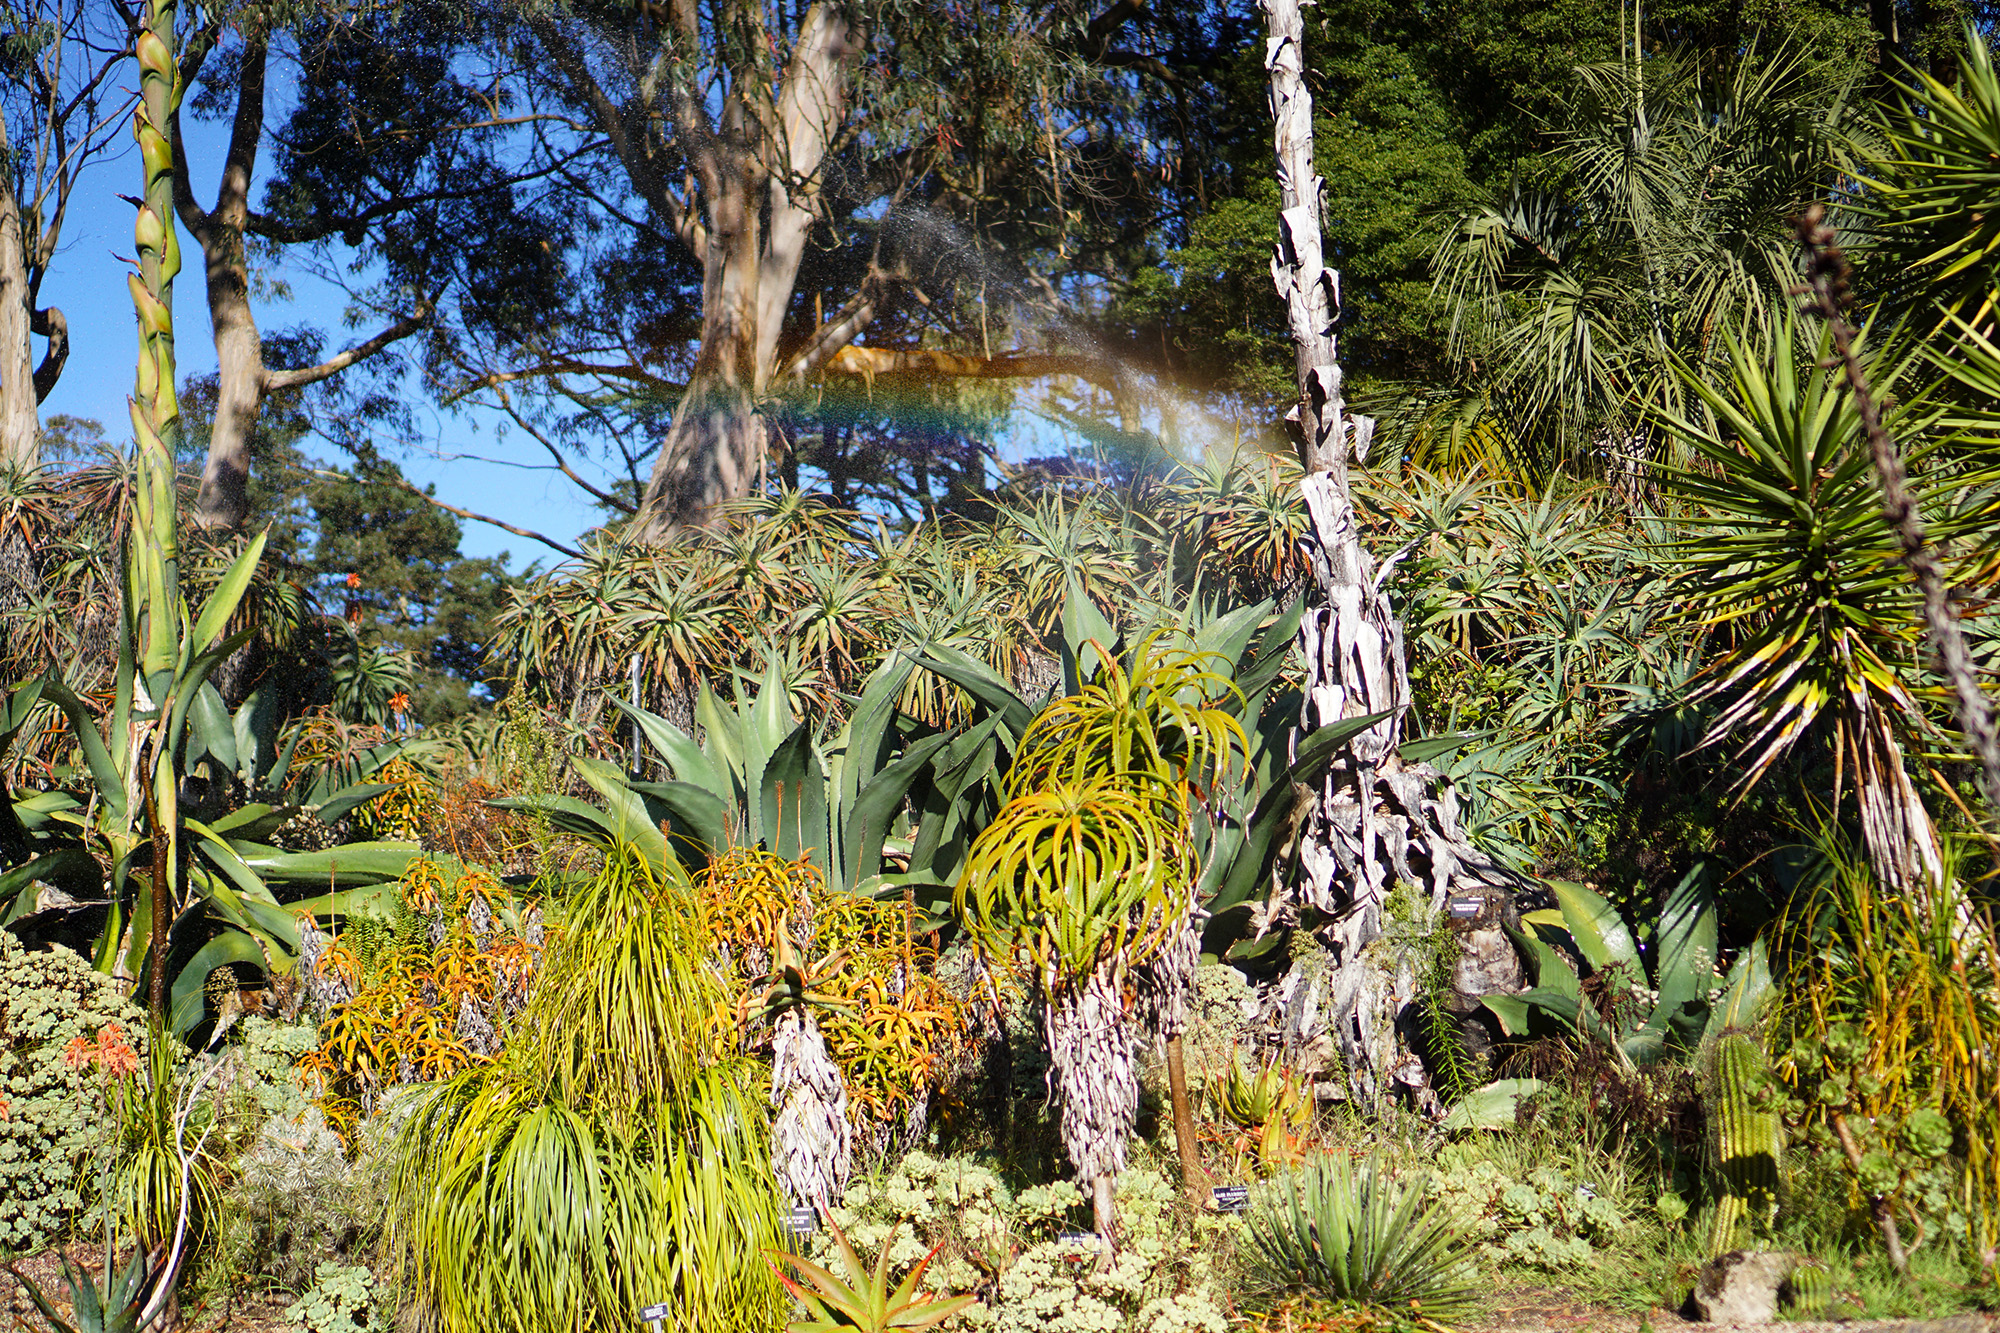 Rainbow in the sprinklers in the desert area of the San Francisco Botanical Garden / Darker than Green